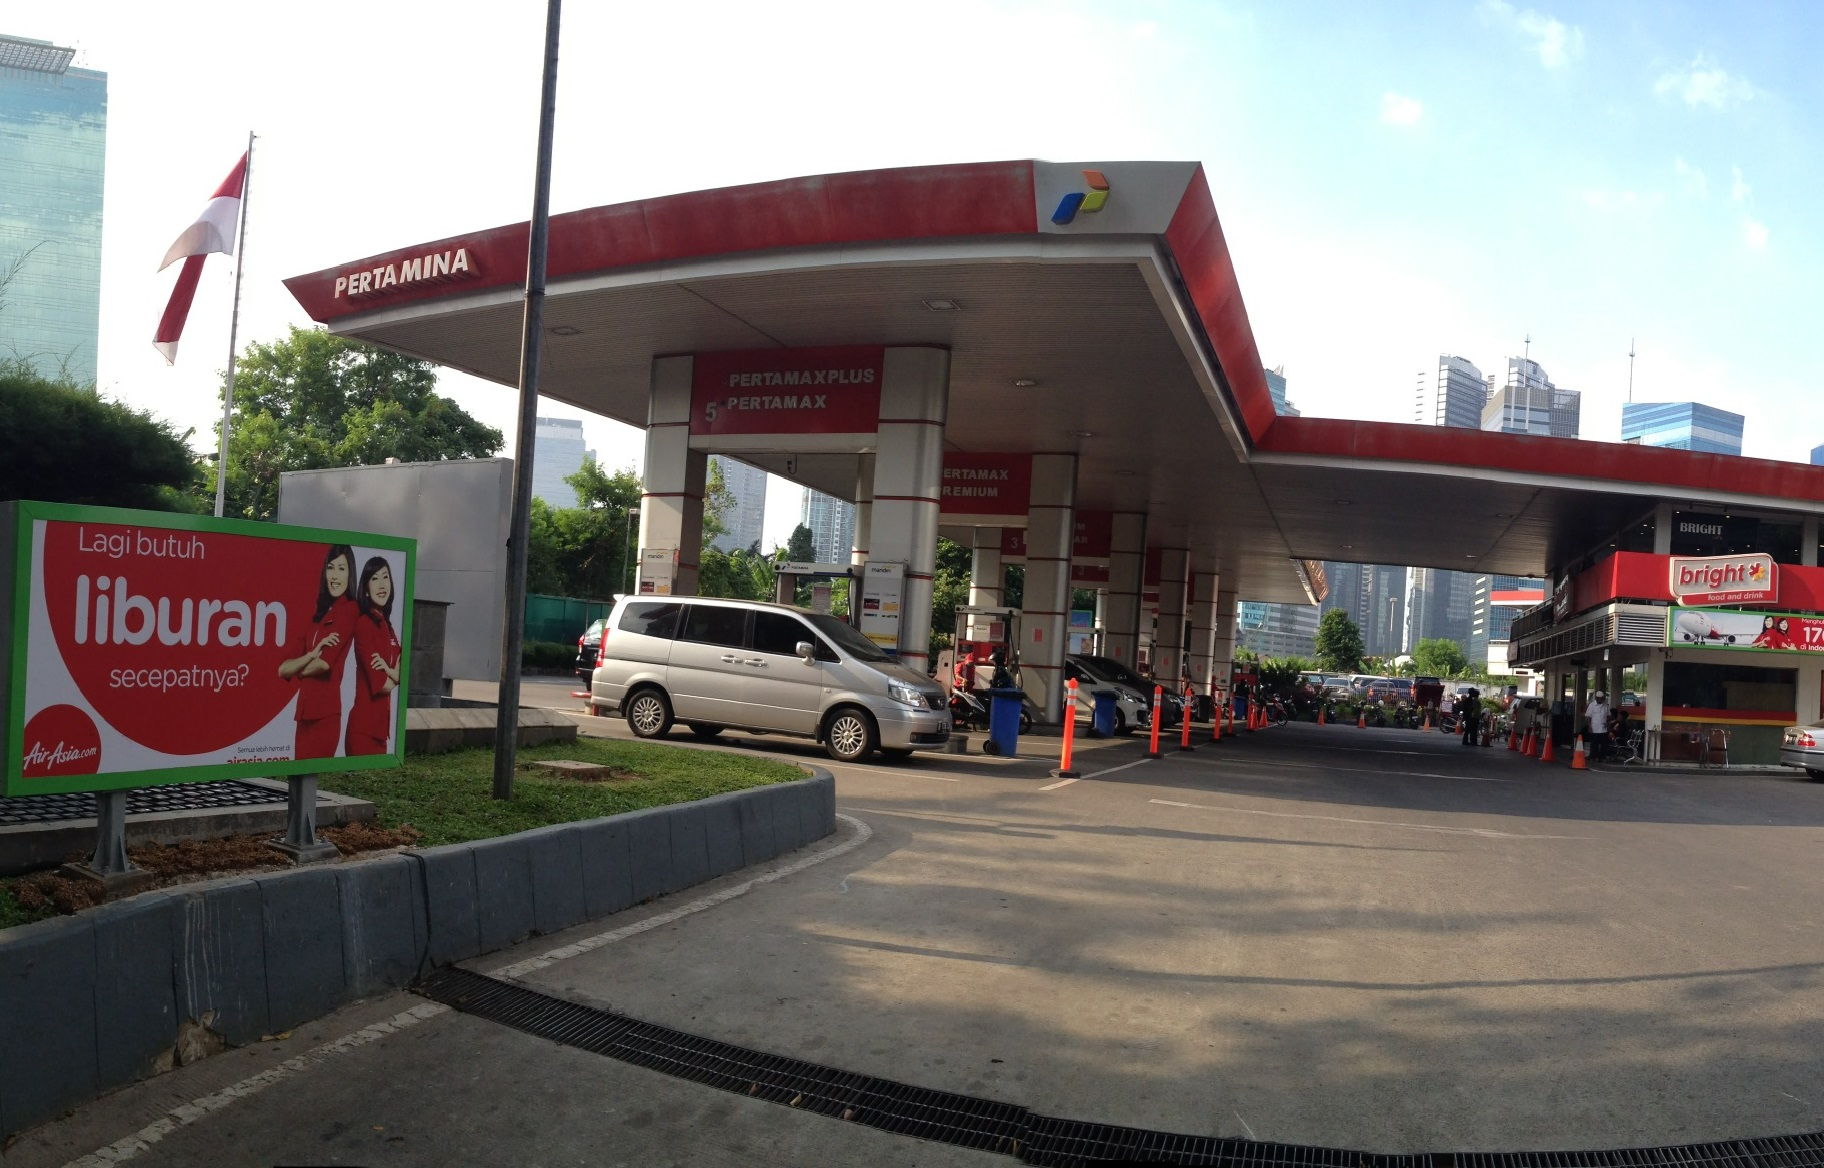 Pertamina-photo-for-nl.jpg